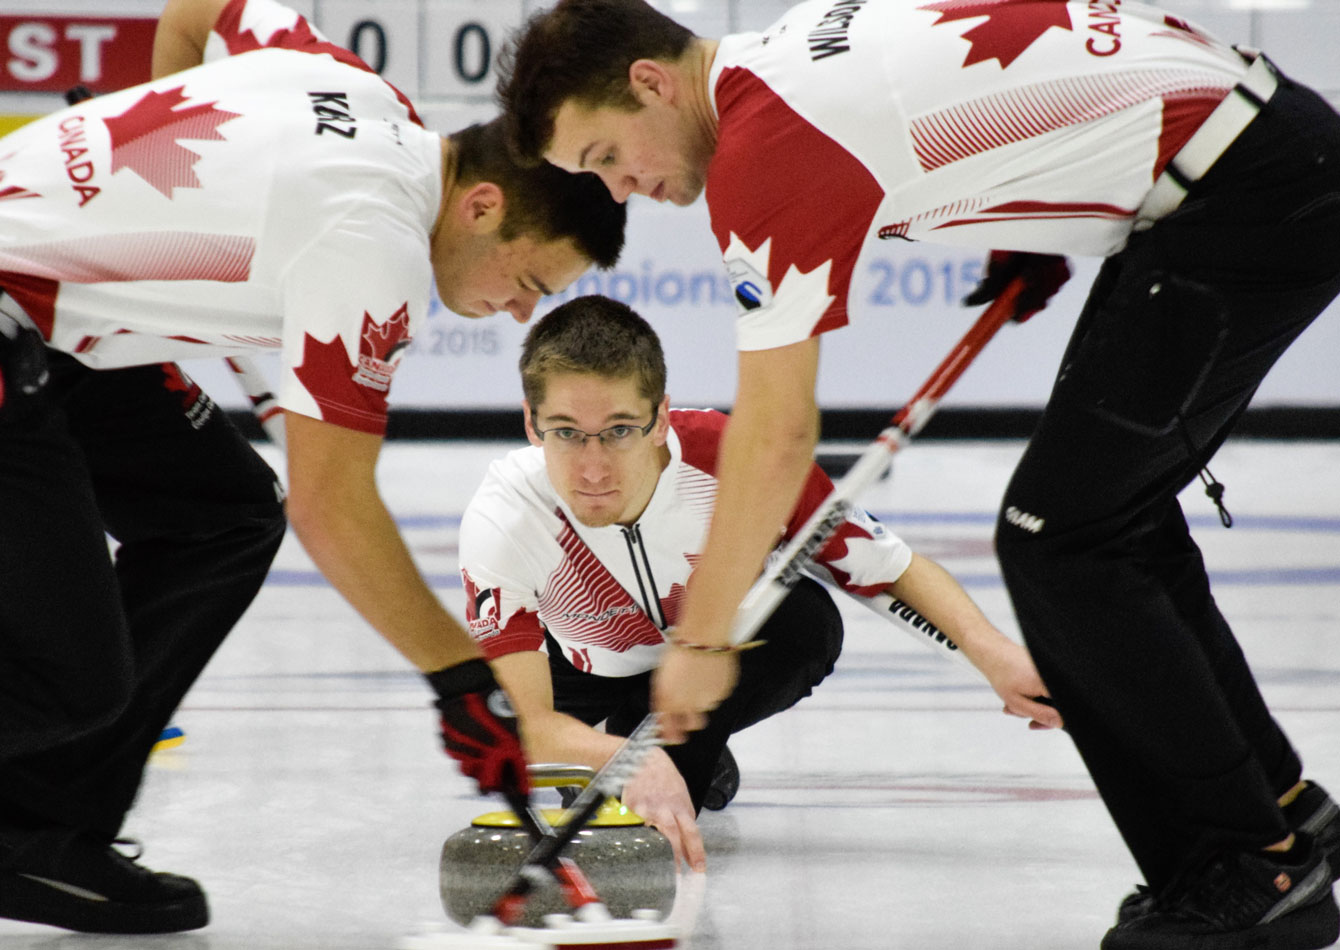 Team Canada men off to a 4-1 start through Tuesday at World Junior Curling Championship.